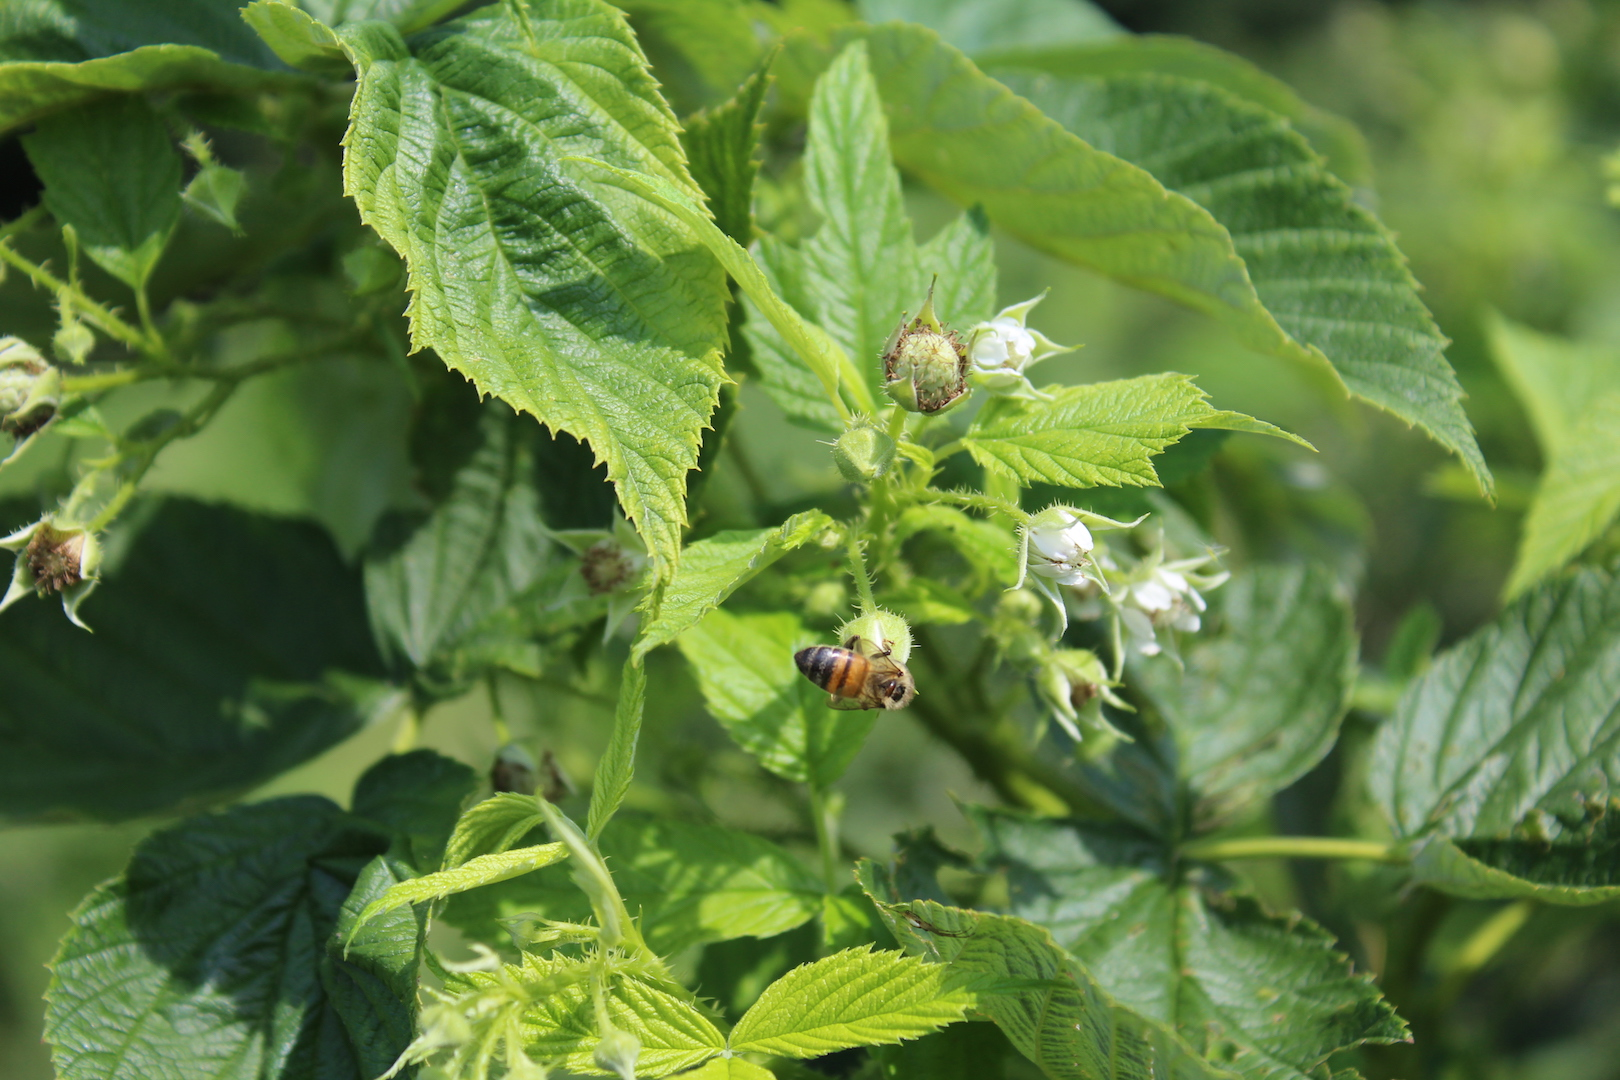 Honeybee Pollinating a Raspberry Blossom at a Pick Your Own